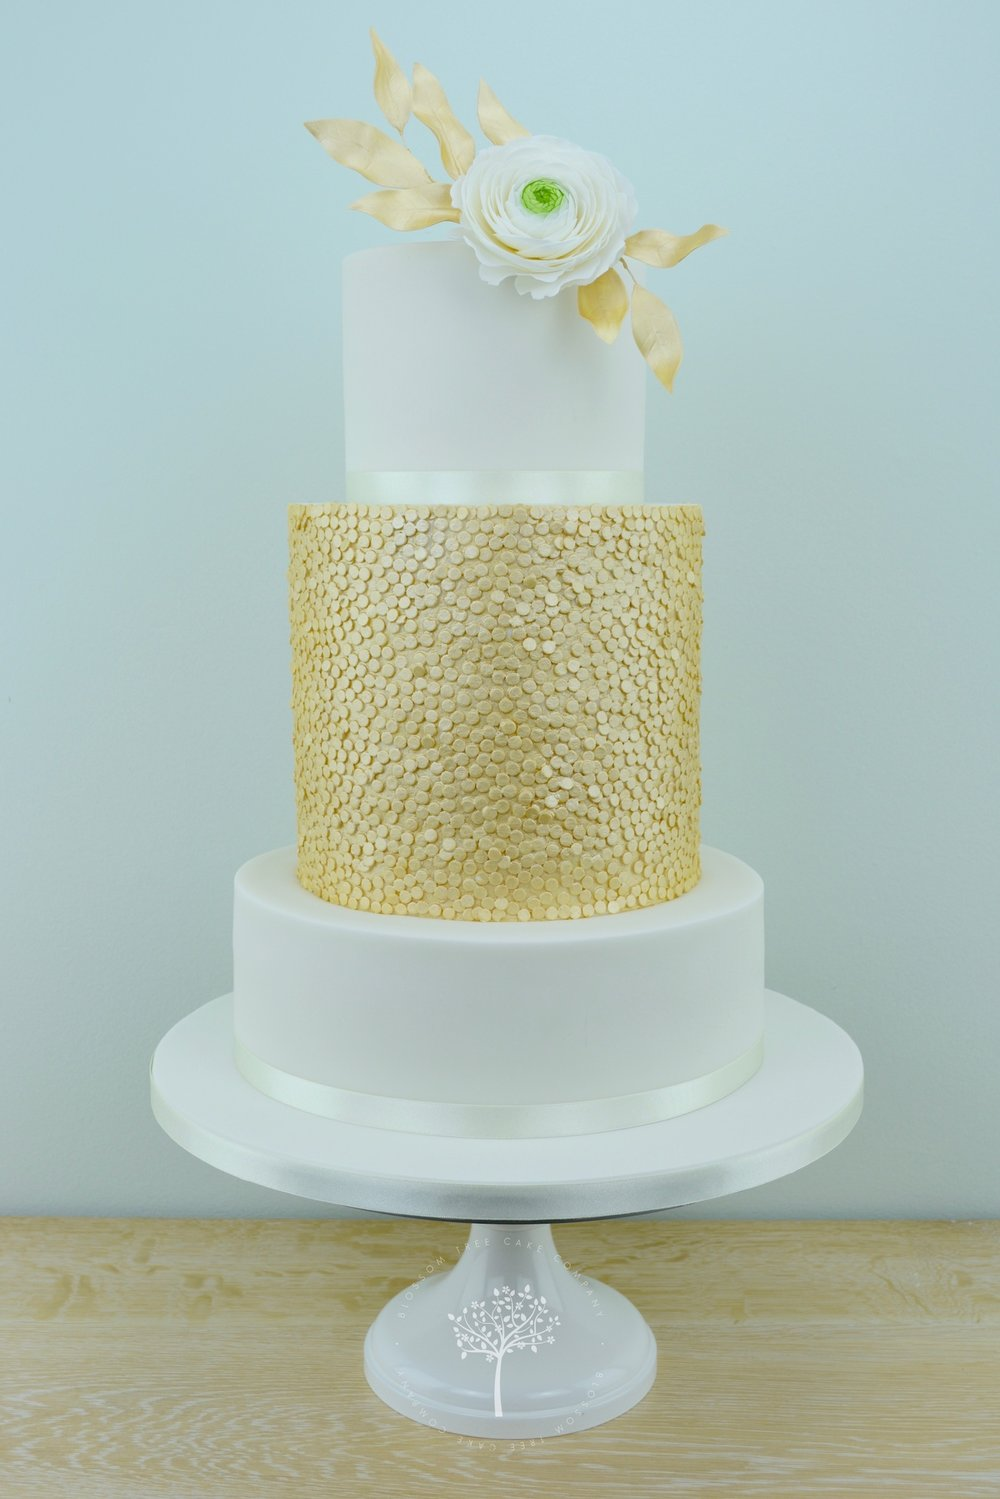 Ranunculus with Gold Sequins wedding cake by Blossom Tree Cake Company.jpg